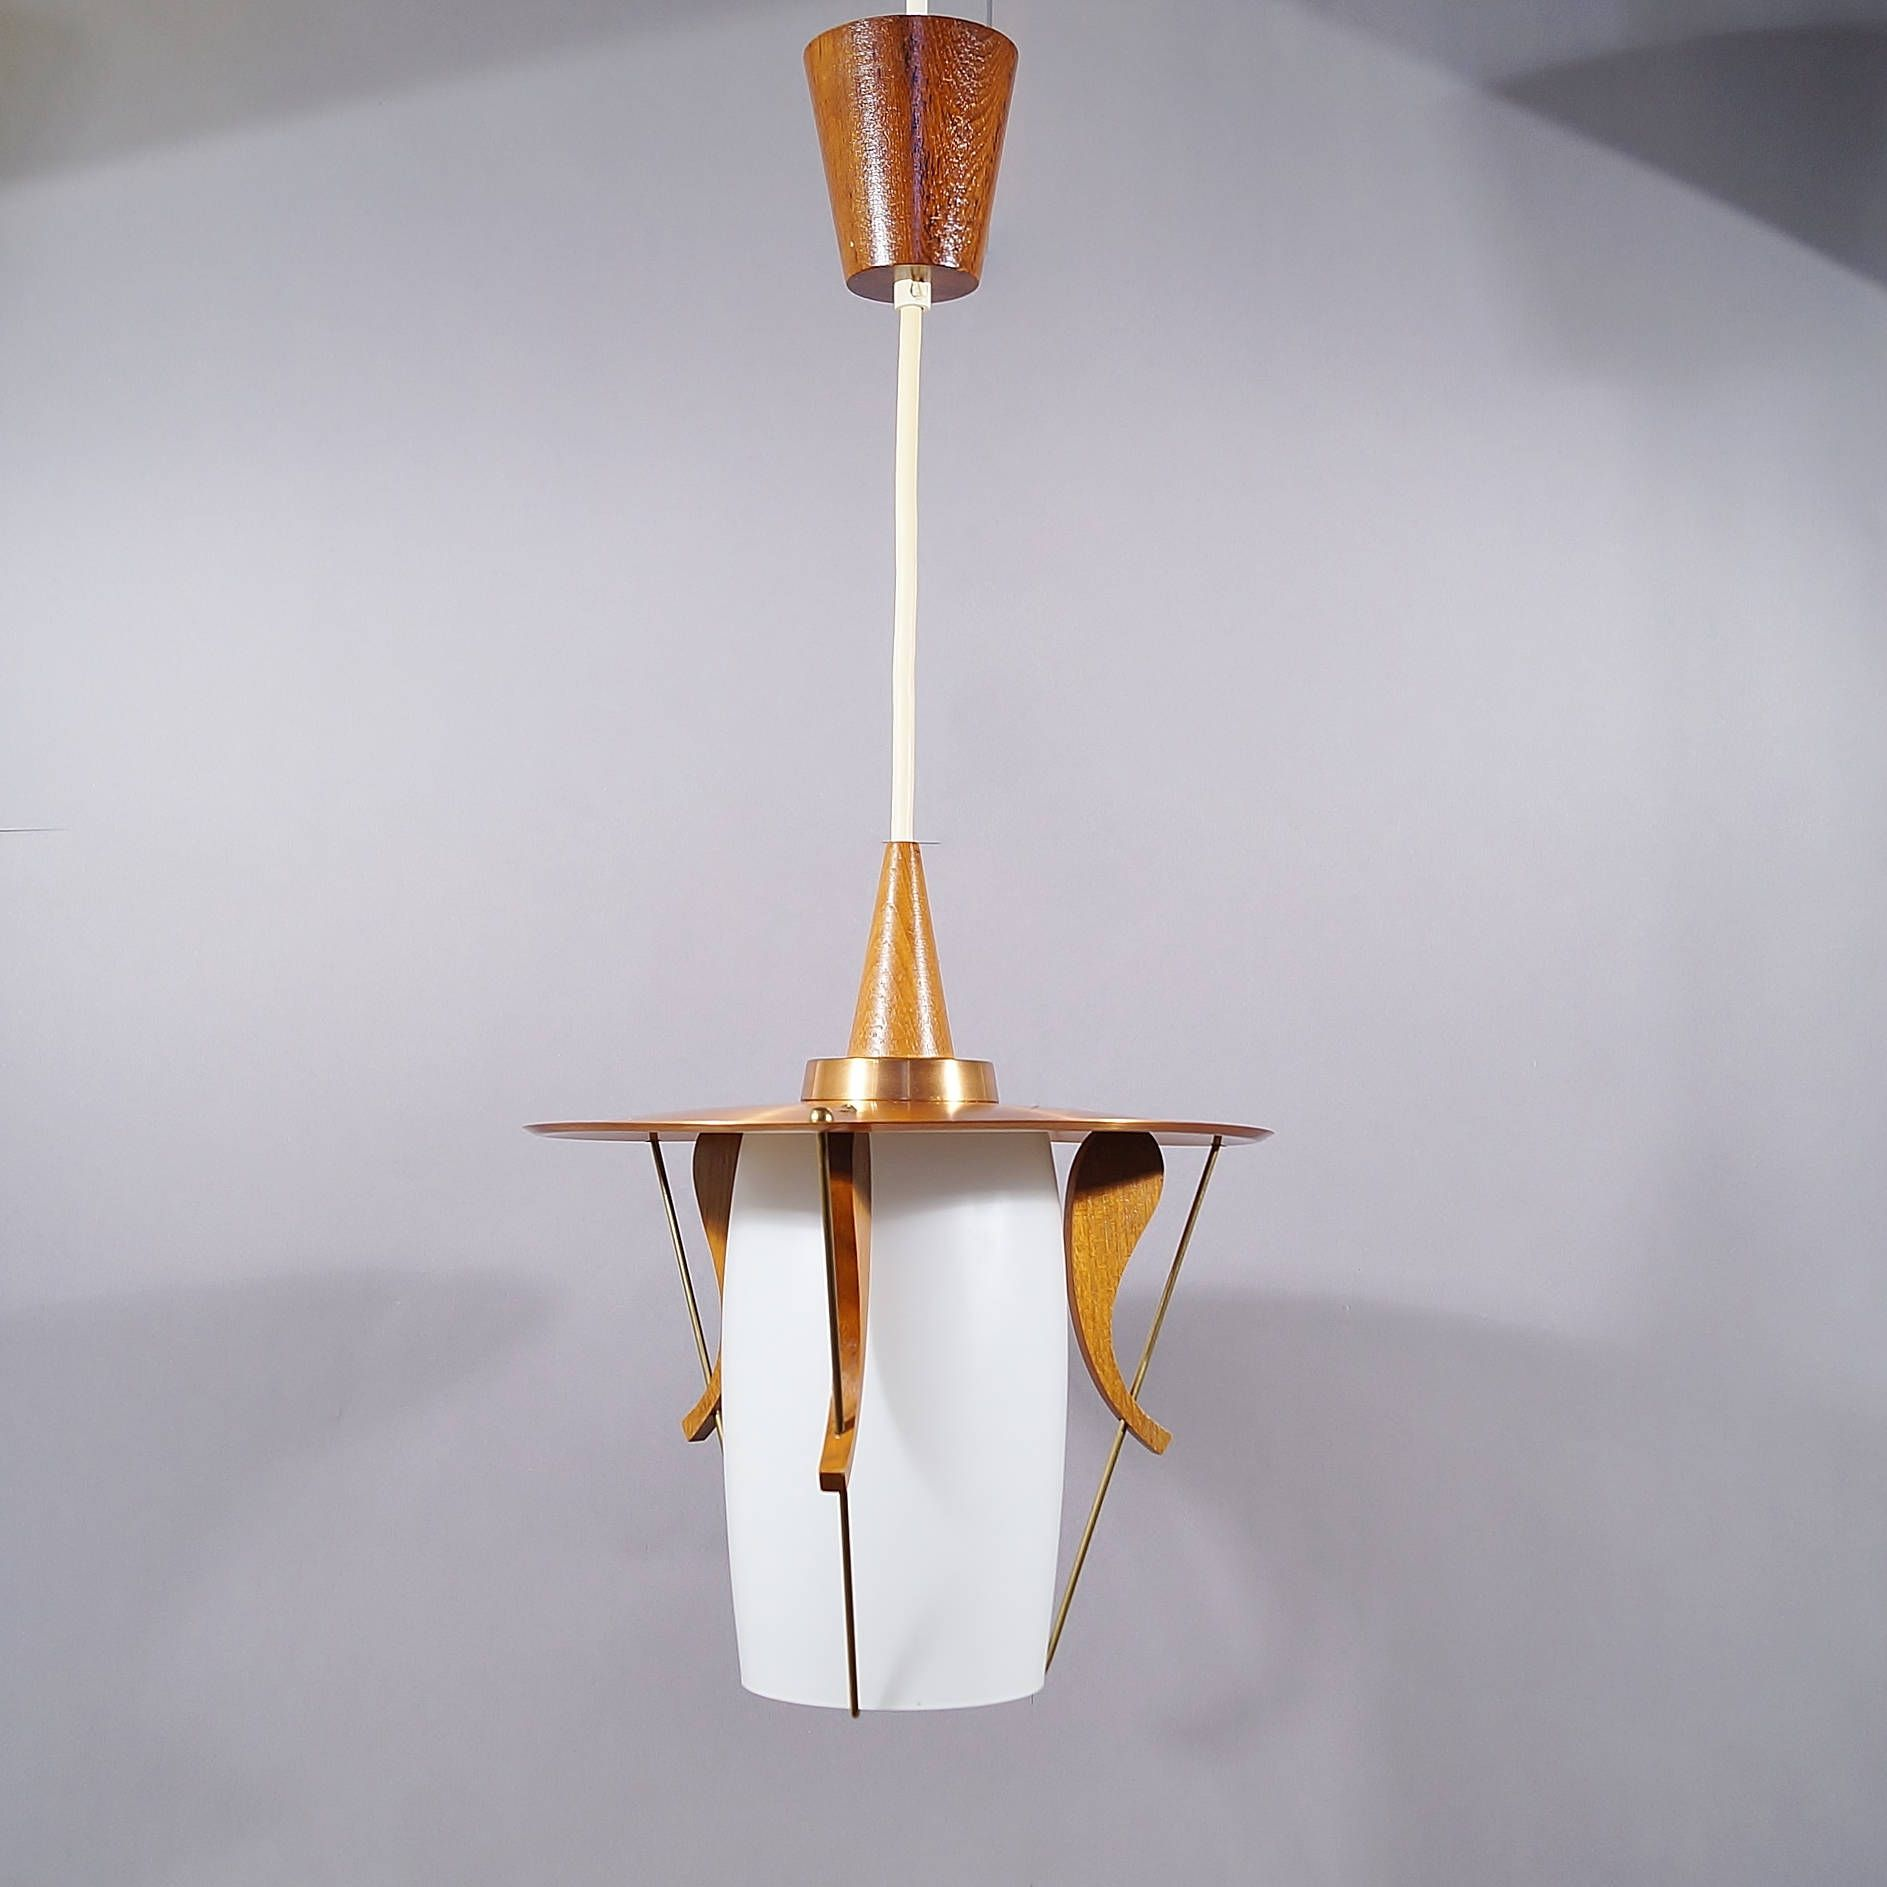 Lampe Kupfer Retro Glass Hanging Lamp 1960s My Favourite Lamps Teak Deckenlampe